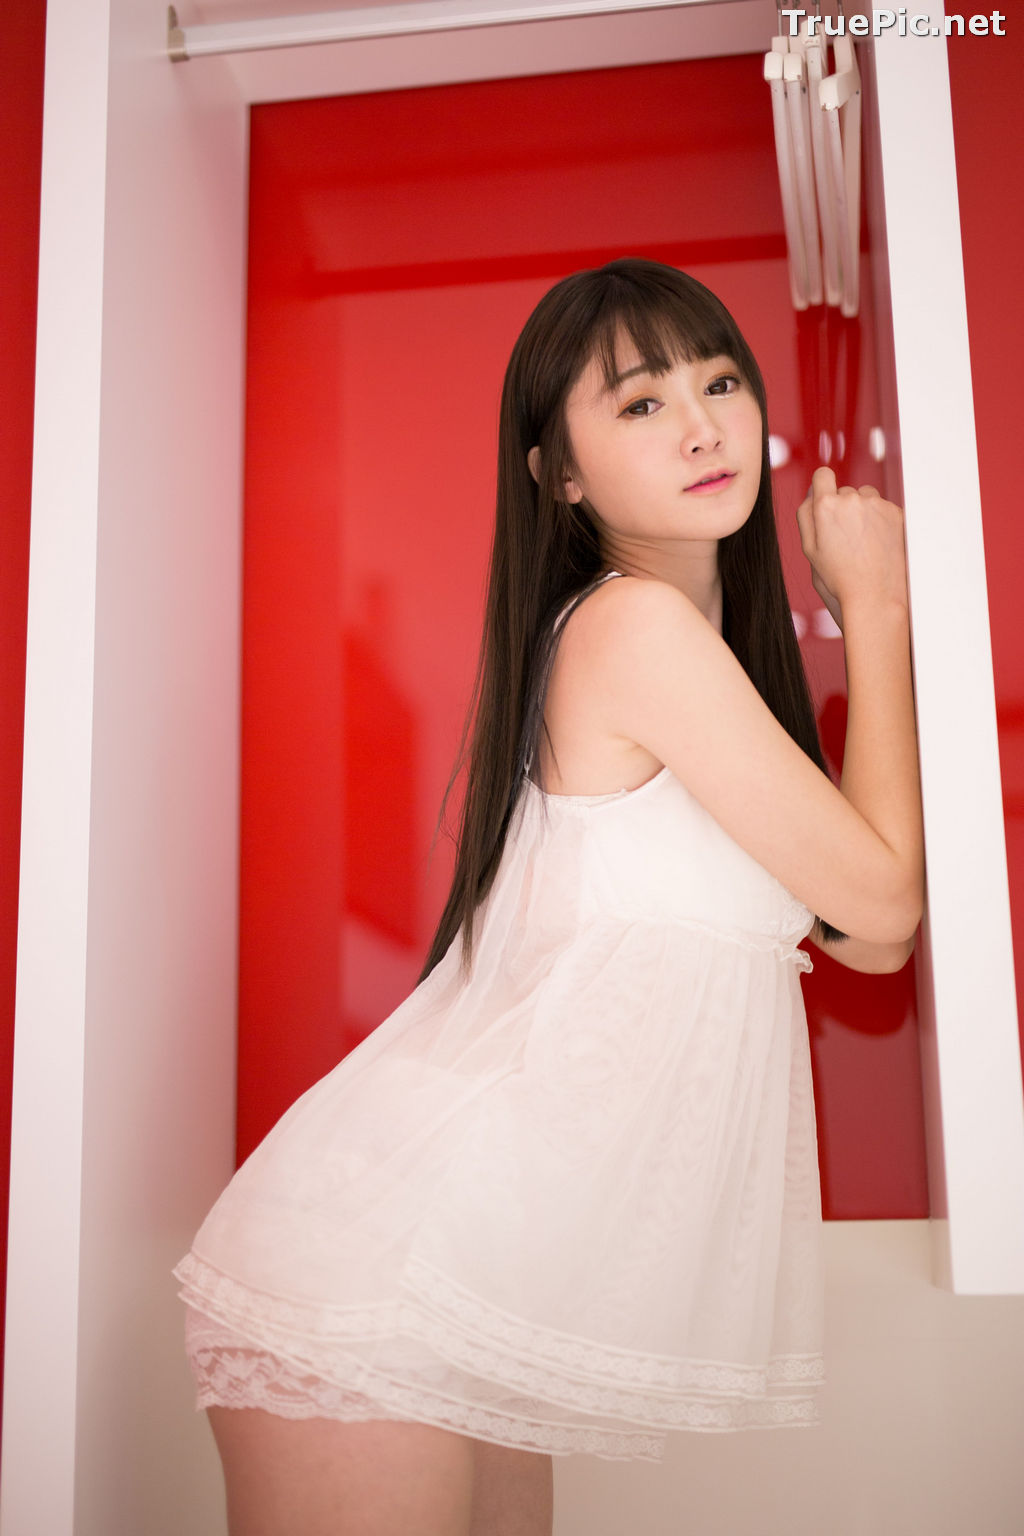 Image Taiwanese Hot Model - Sexy Kendo Girl - TruePic.net - Picture-61